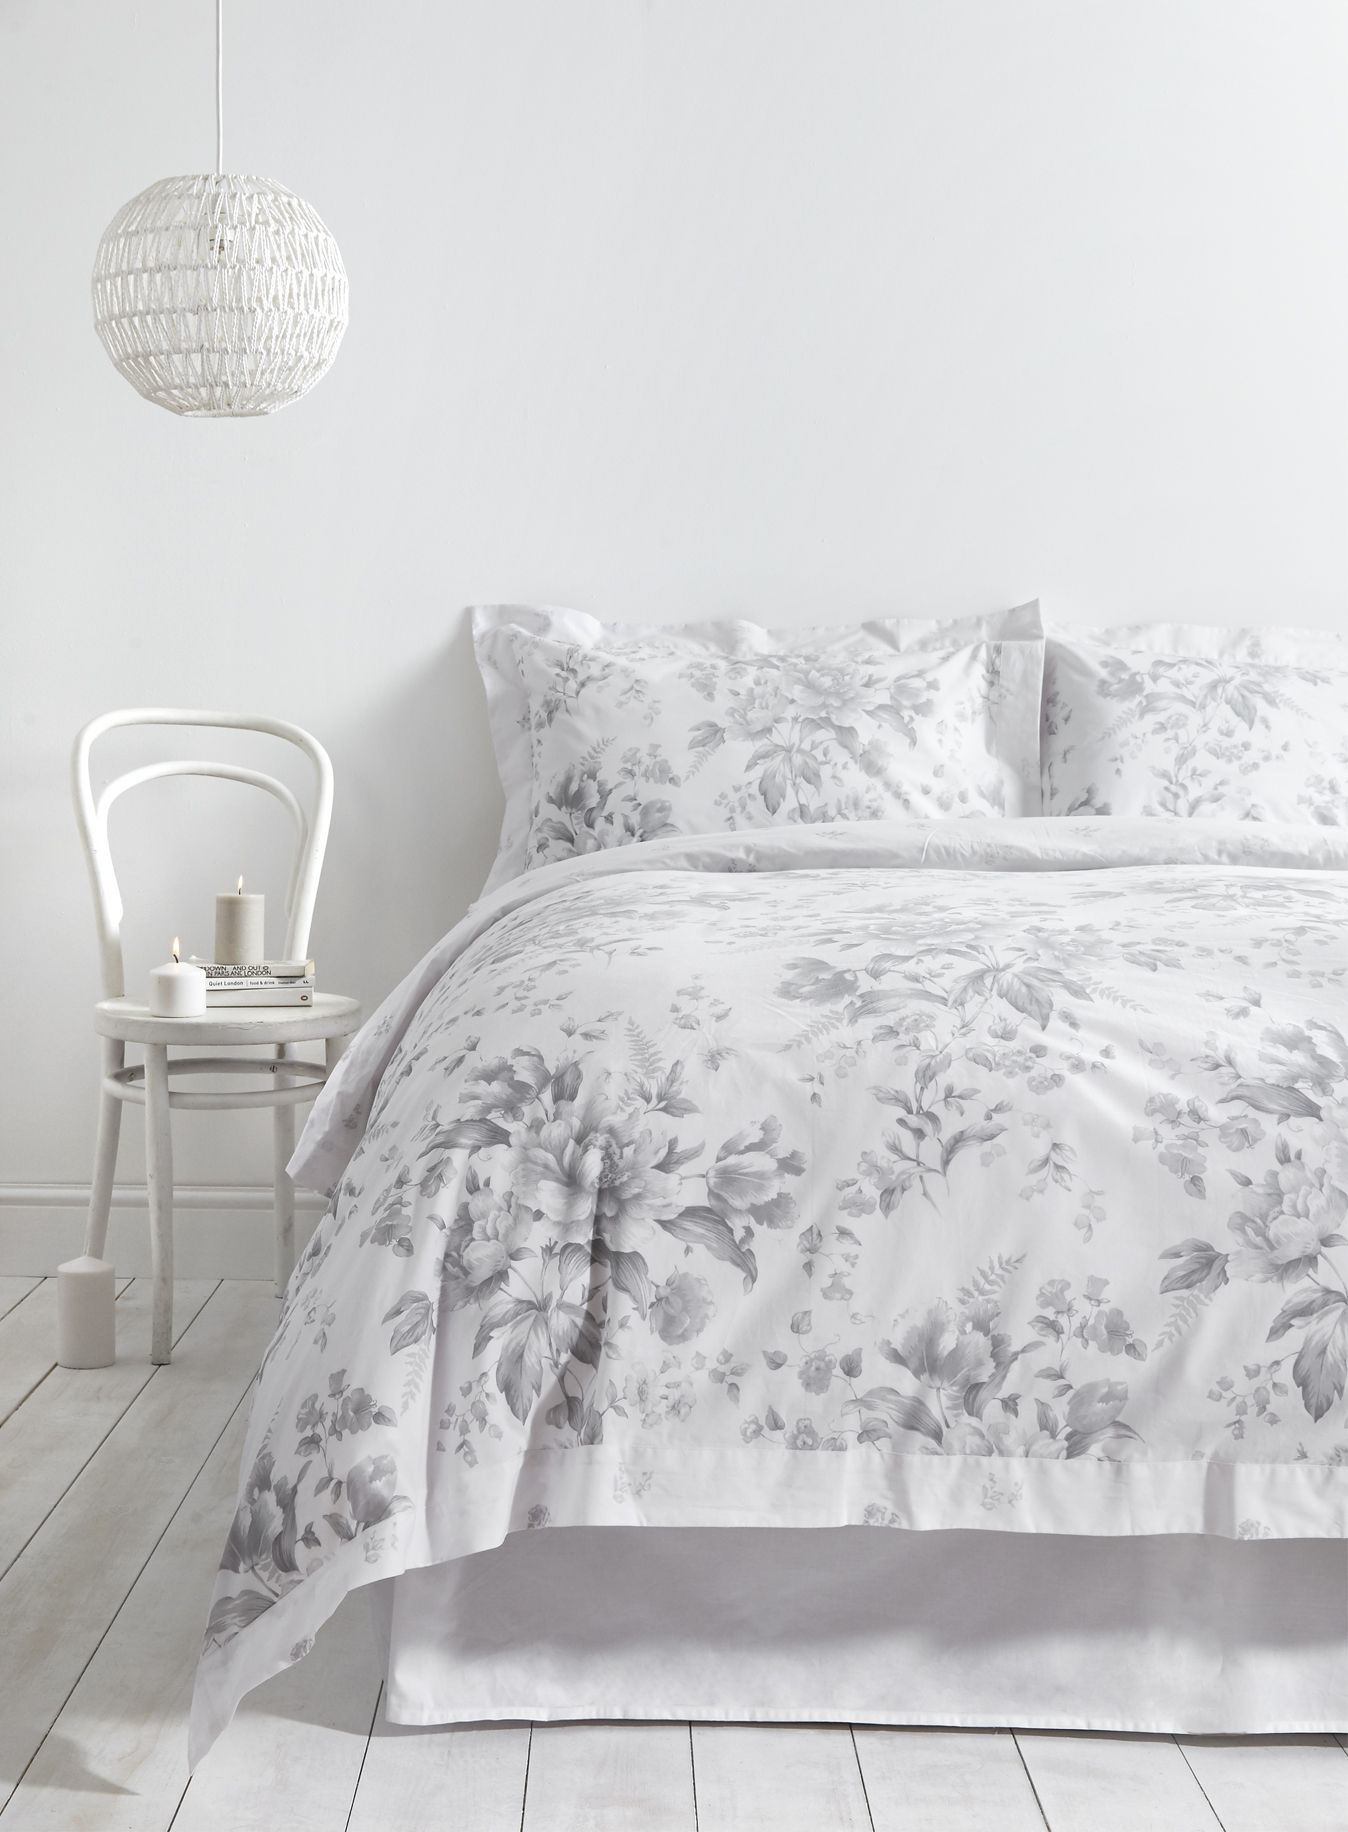 Holly Willoughby Rugby Floral Duvet Cover - from This Holly Willoughby Ruby  bed linen range has a sophisticated grey floral pattern set against crisp  white ...